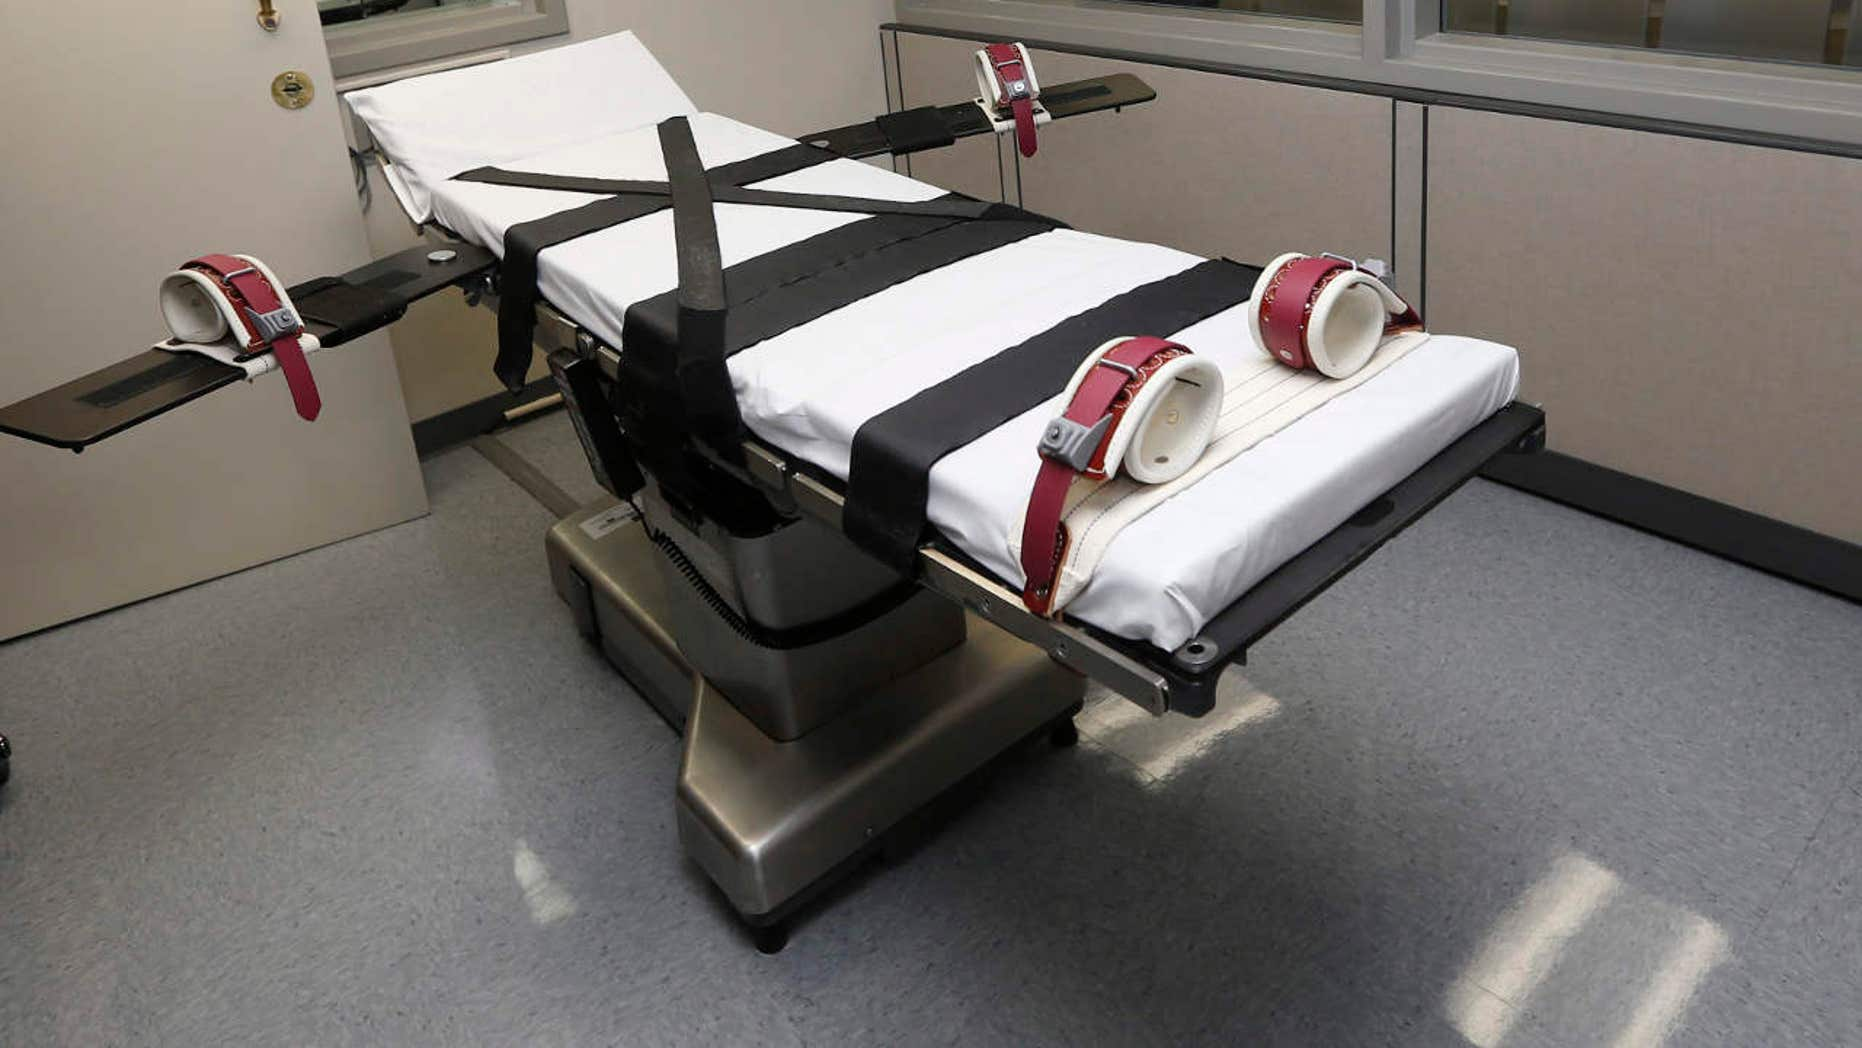 FILE - This Oct. 9, 2014, file photo shows the gurney in the the execution chamber at the Oklahoma State Penitentiary in McAlester, Okla.